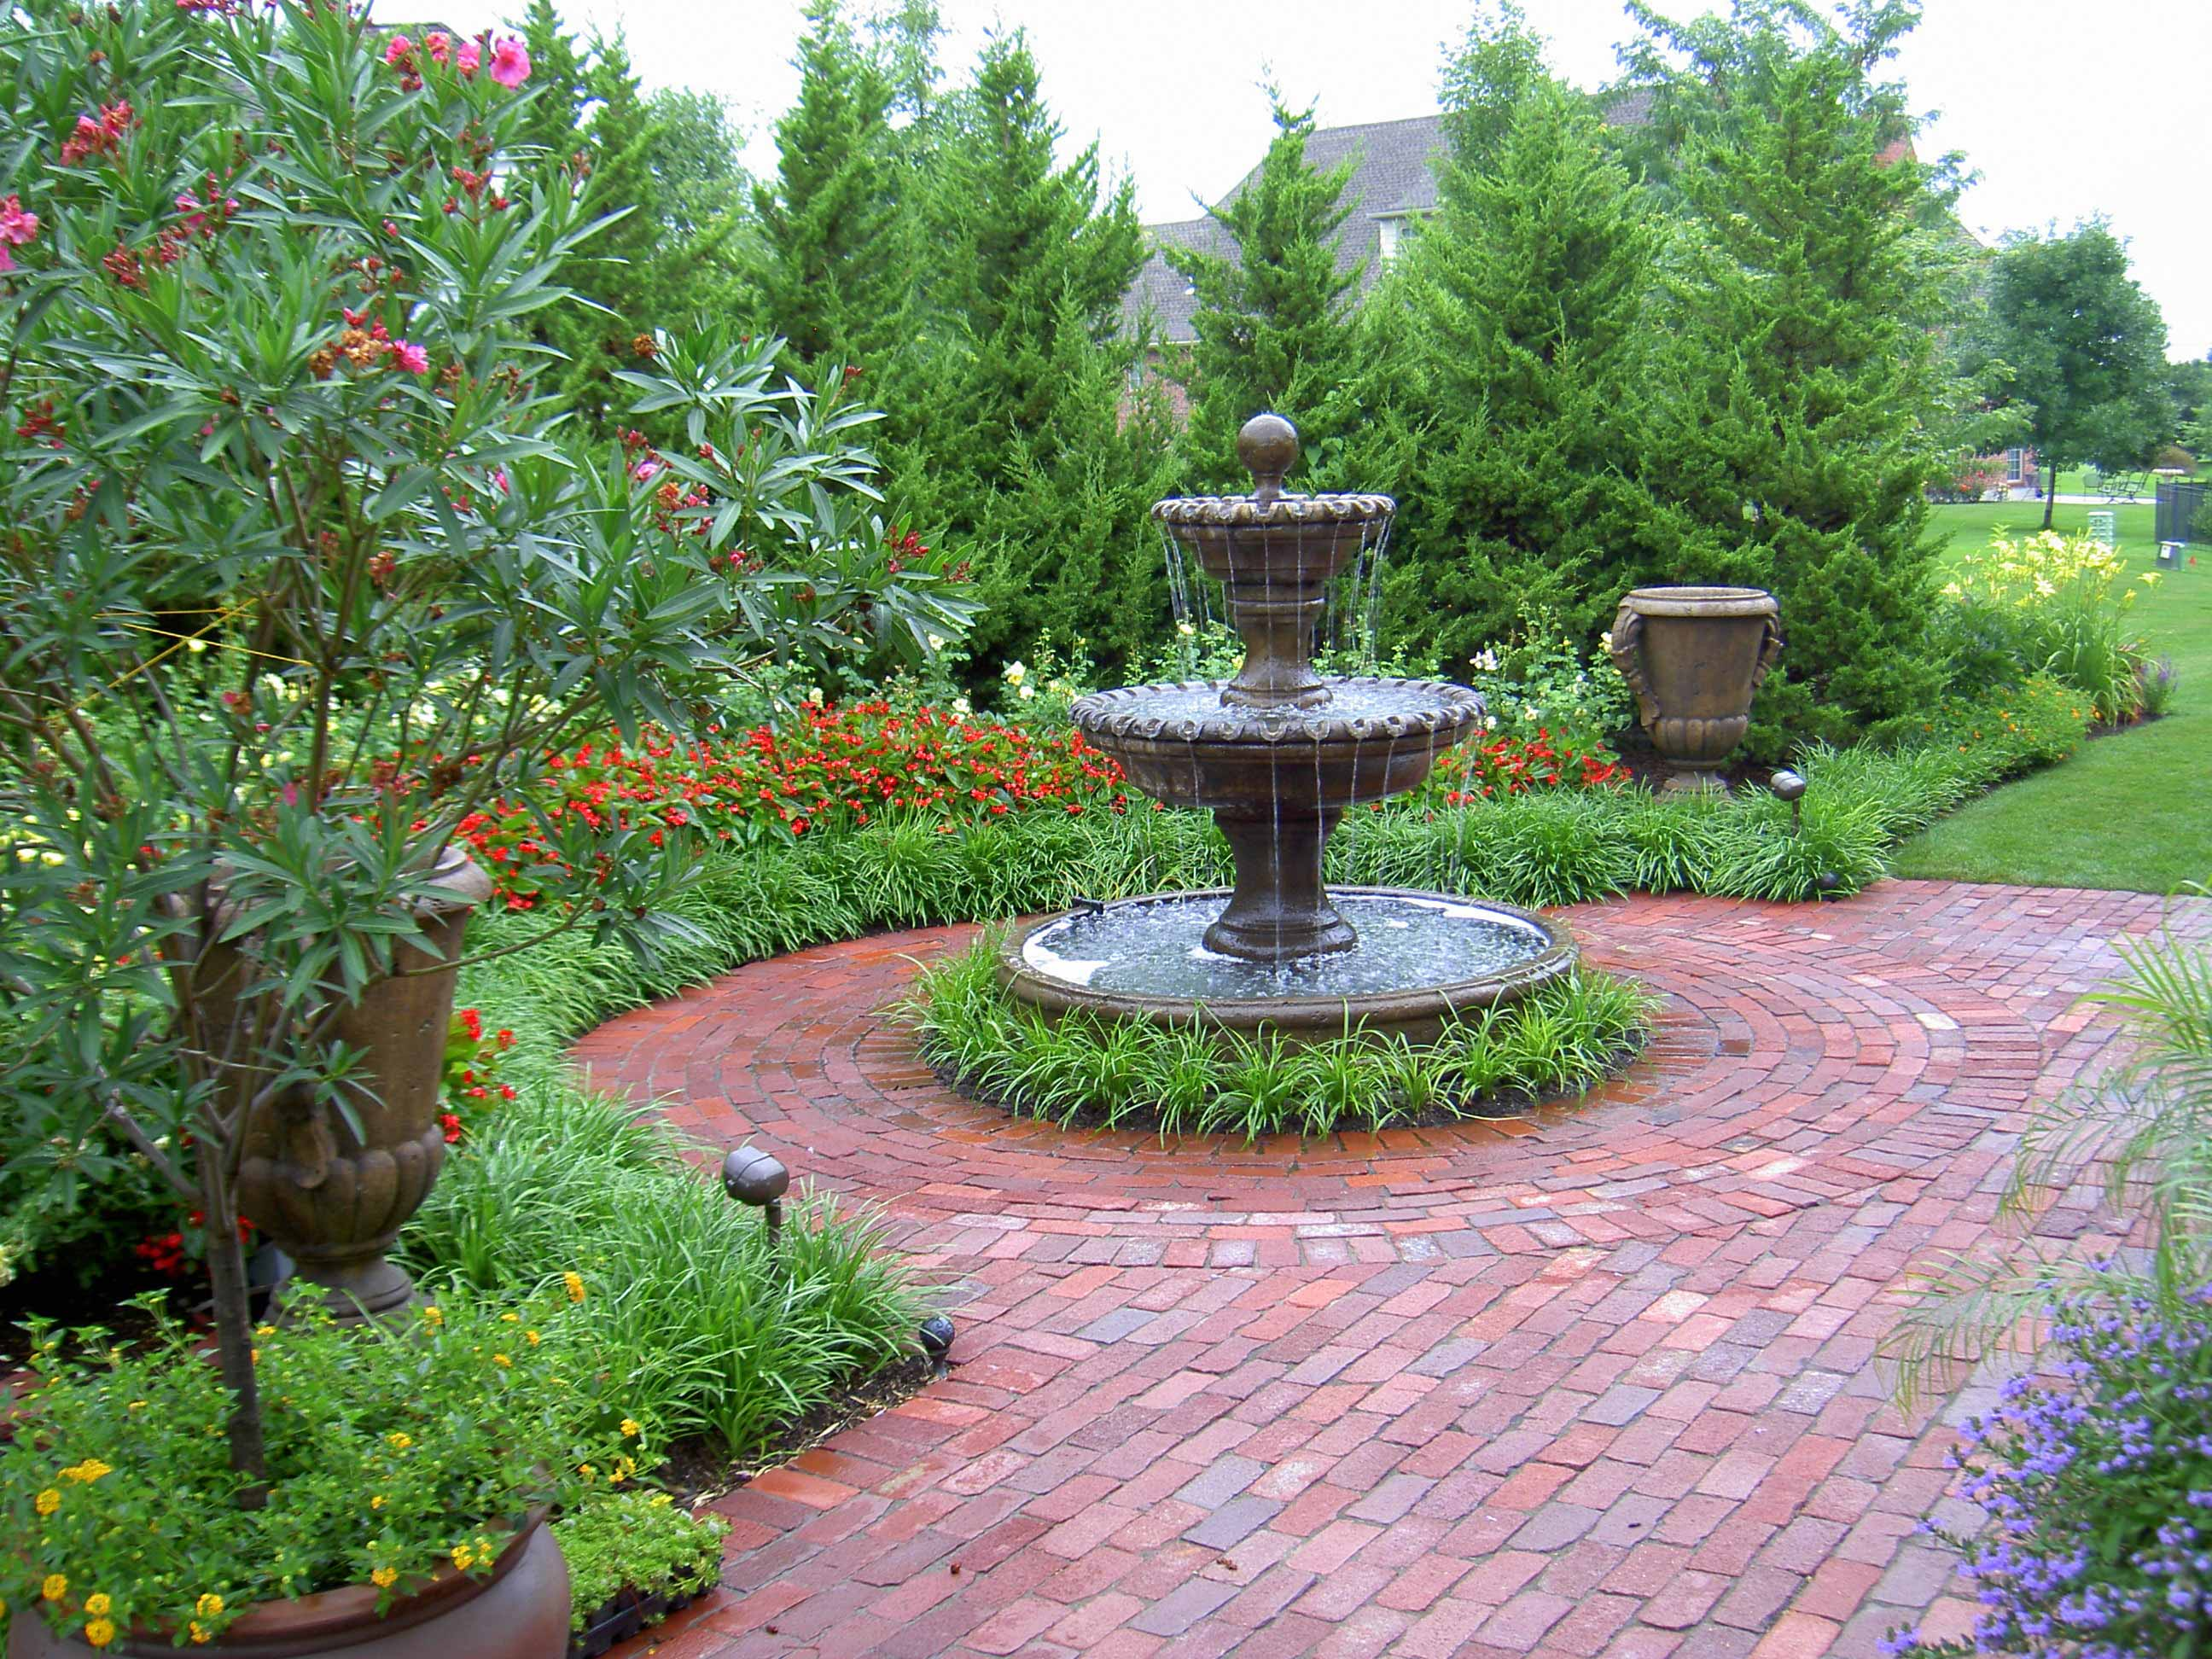 Residential landscape design by rosehill gardens in kansas for Home garden landscape designs